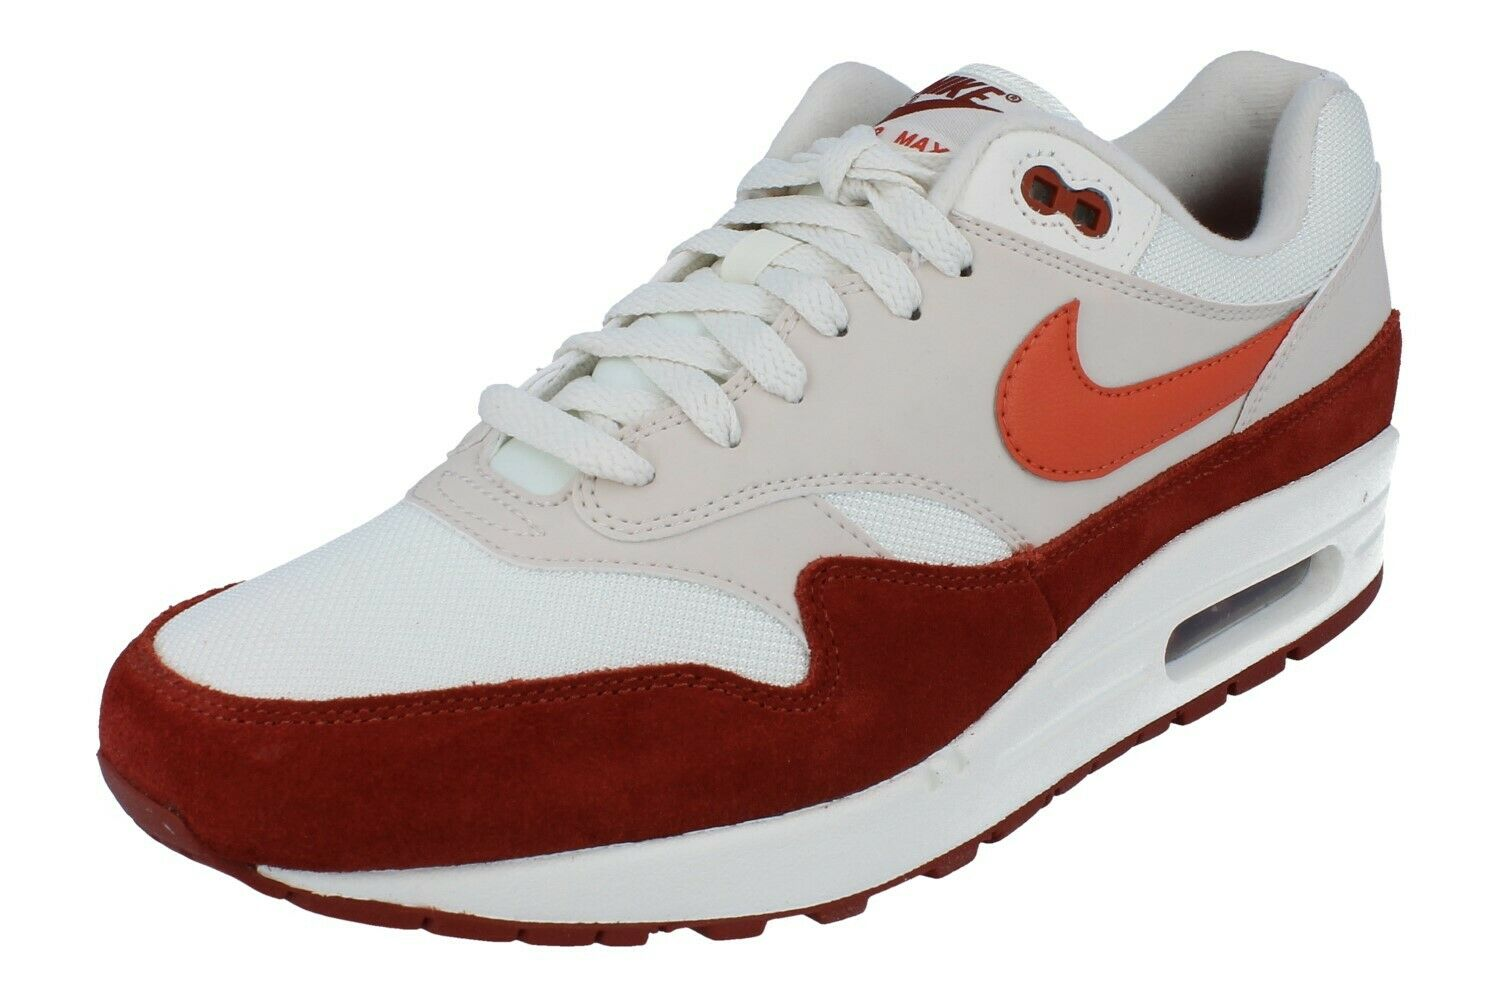 purchase cheap f42f1 6f852 Nike Air Max 1 Mens UK Size 10 Sail/vintage Coral-mars Stone for ...